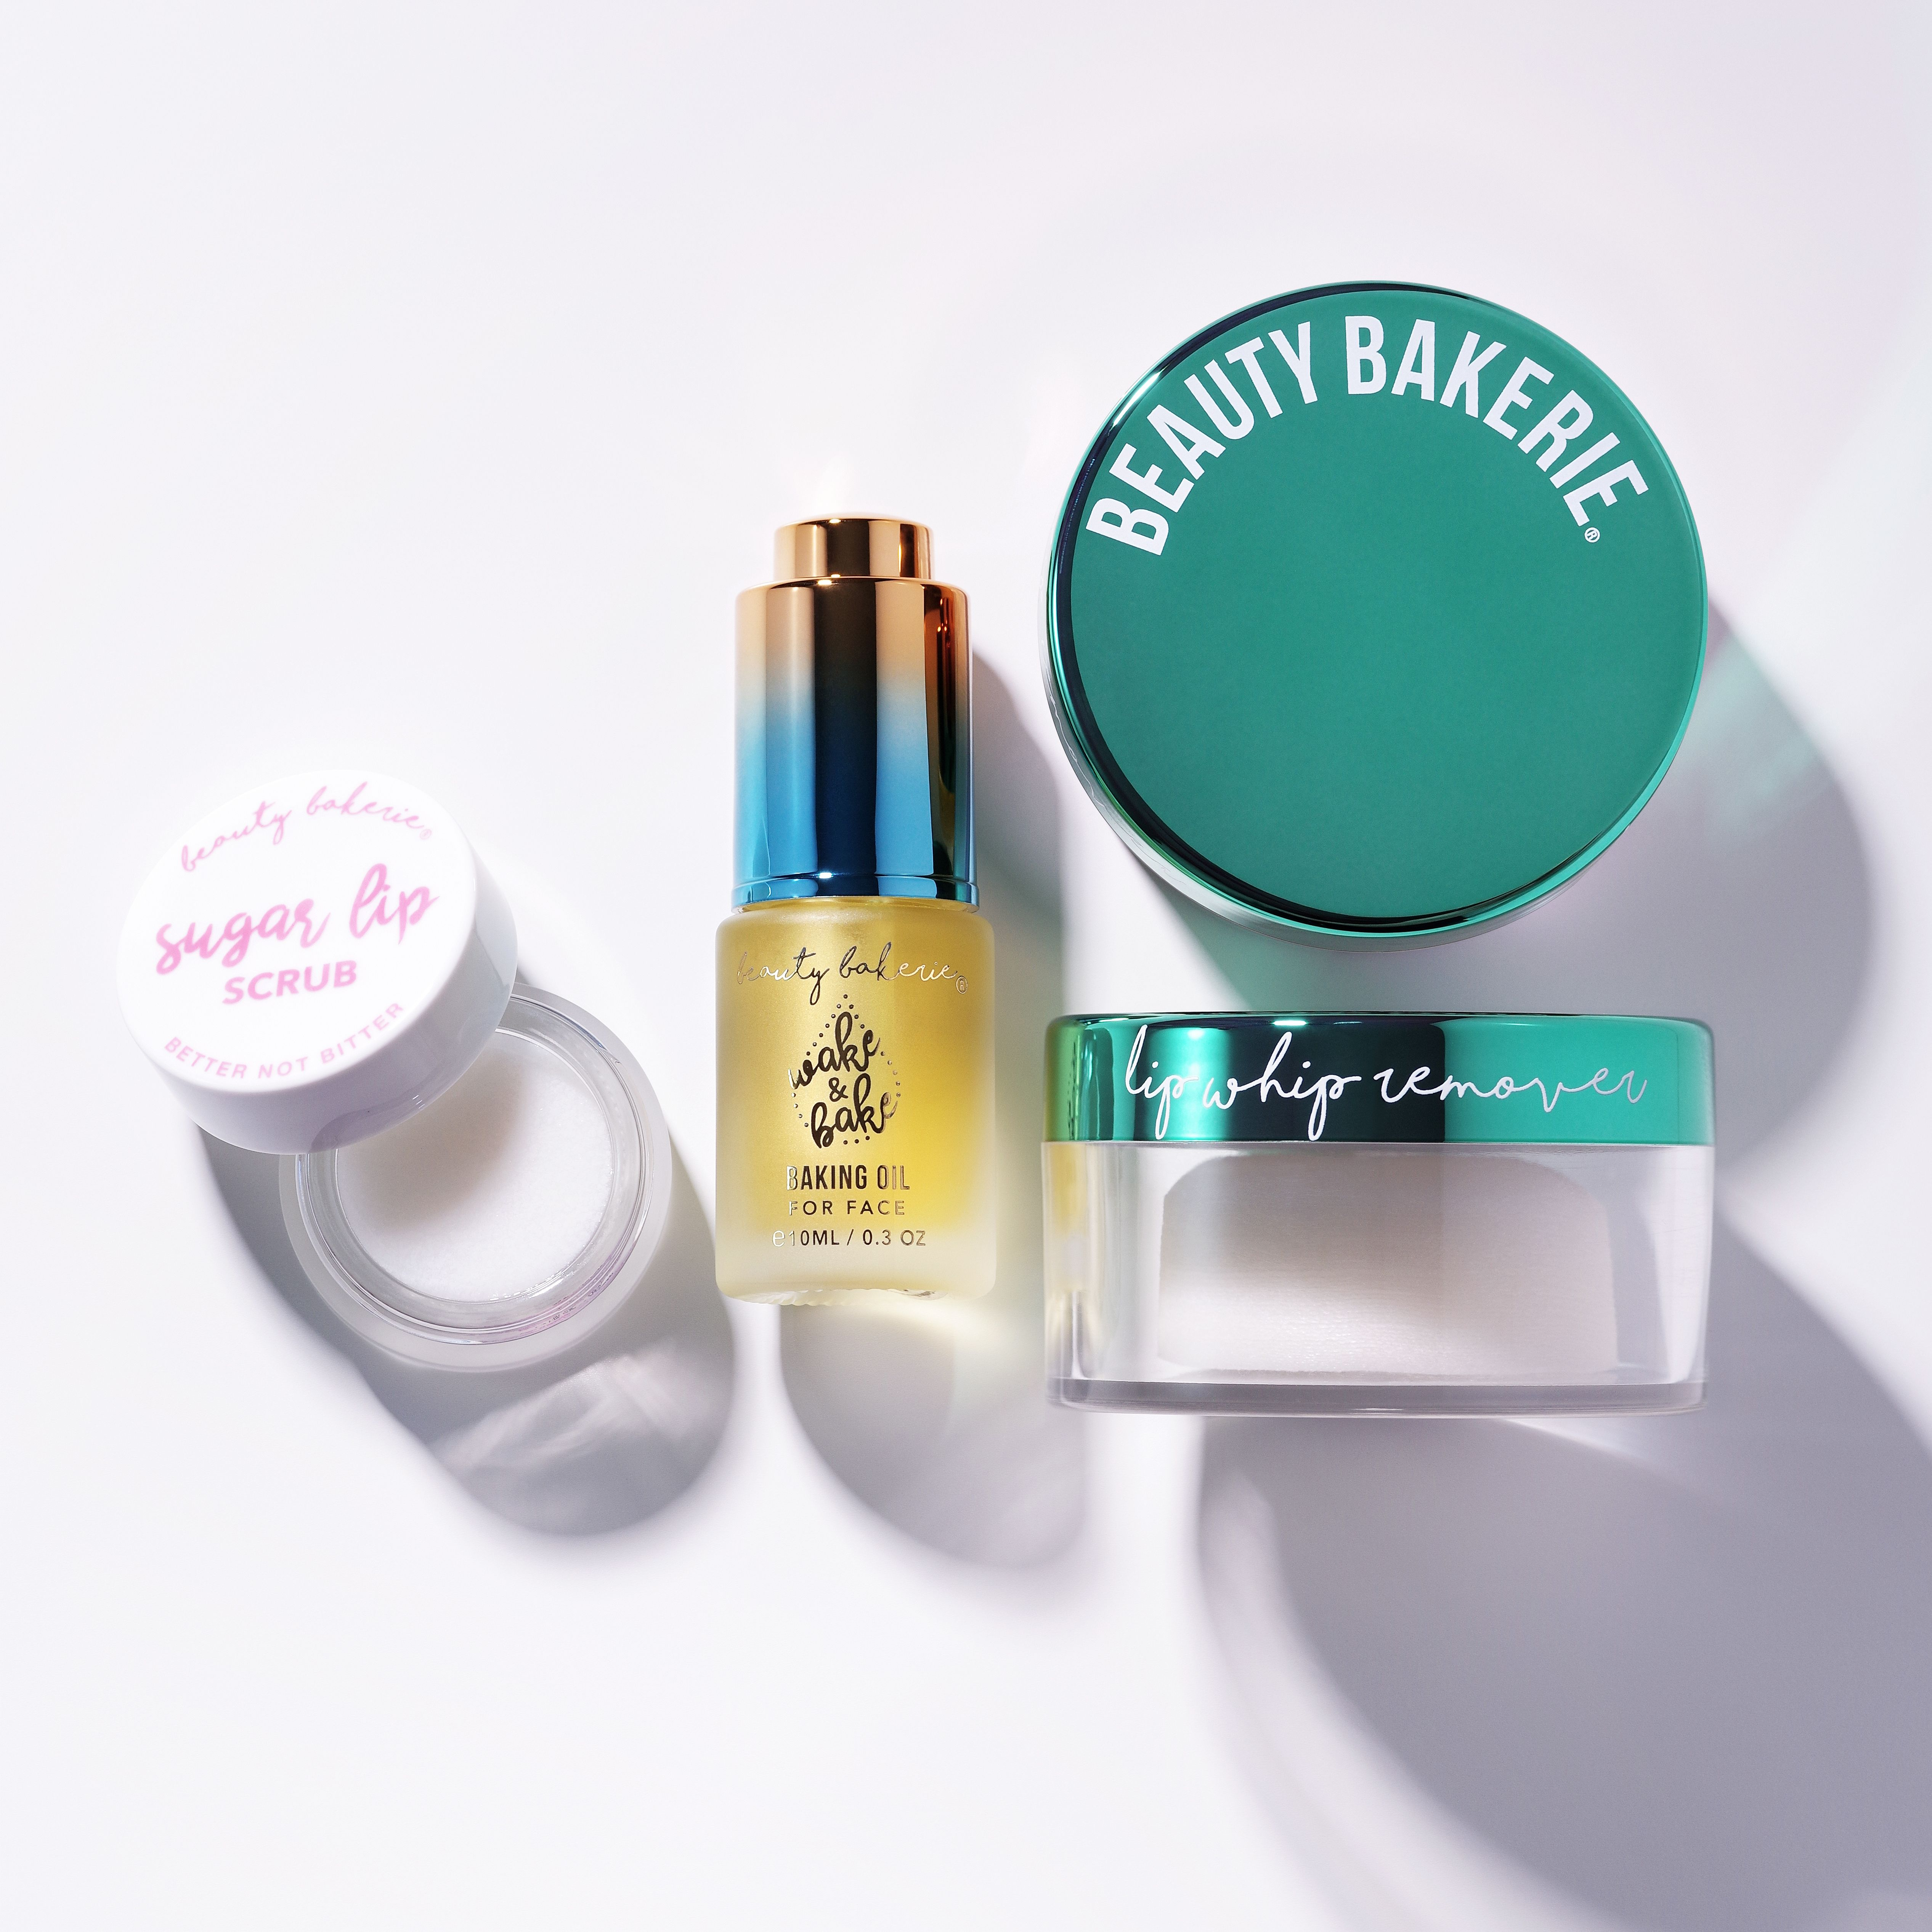 Treatments for your face, lip, hair, cuticles and more